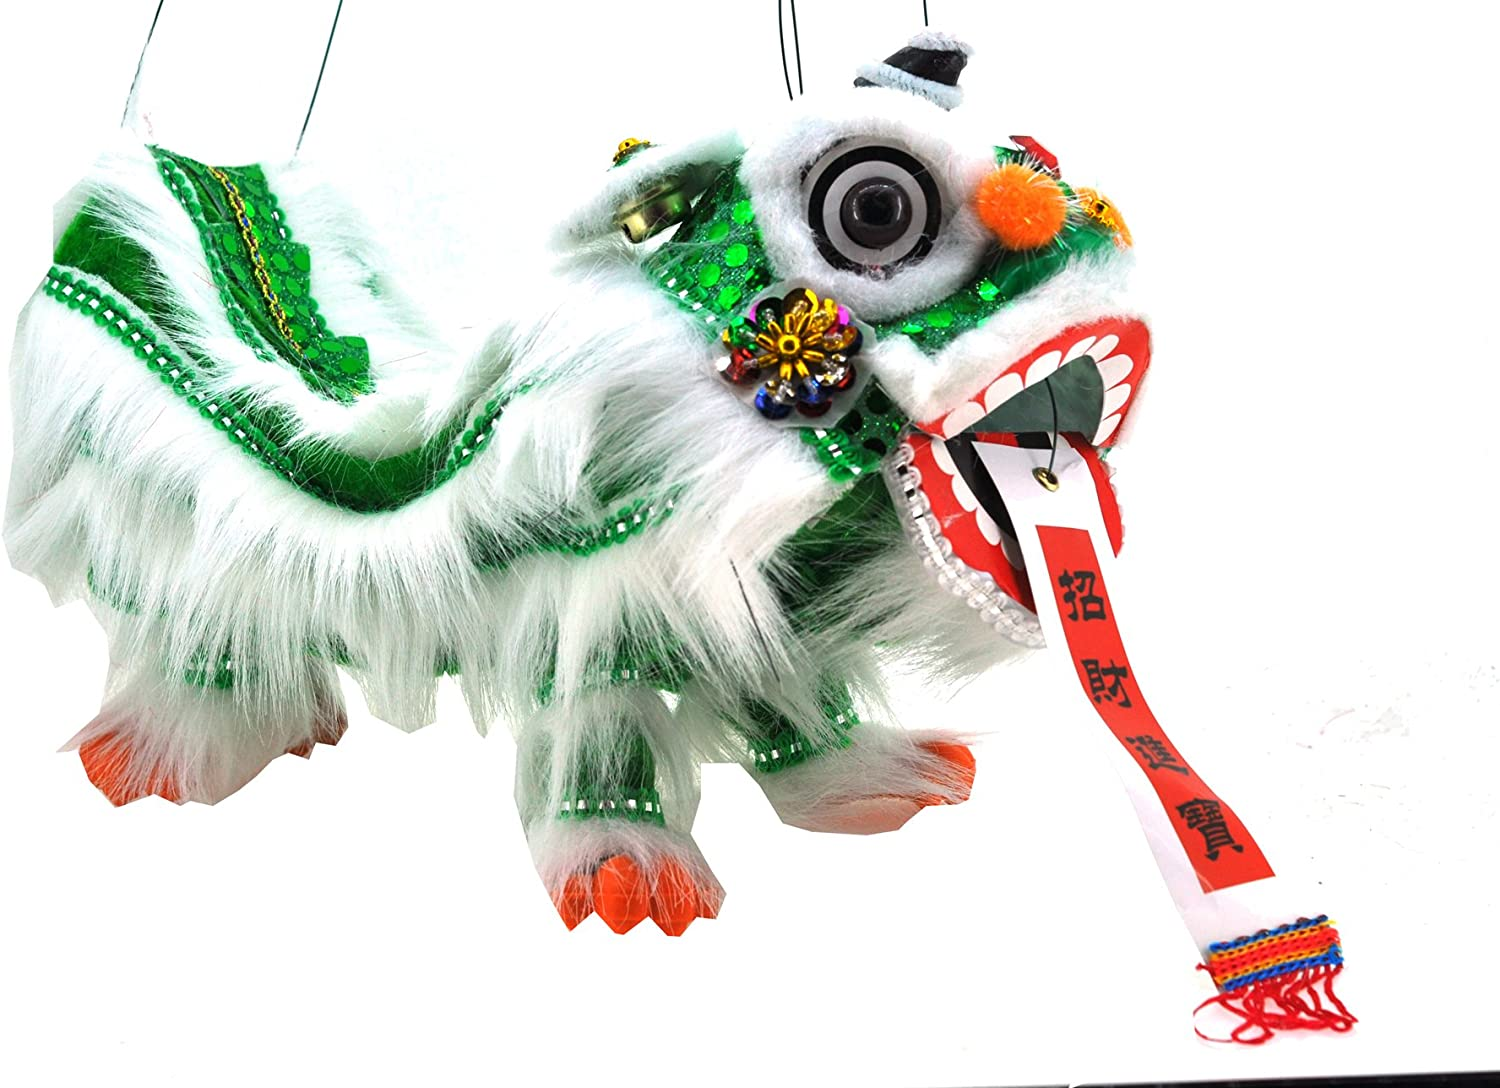 B00WL6VNGQ Mandala Crafts Hand String Puppet with Rod, Chinese Marionette Dragon Lion Toy, Green 81pgjOZ0ZbL